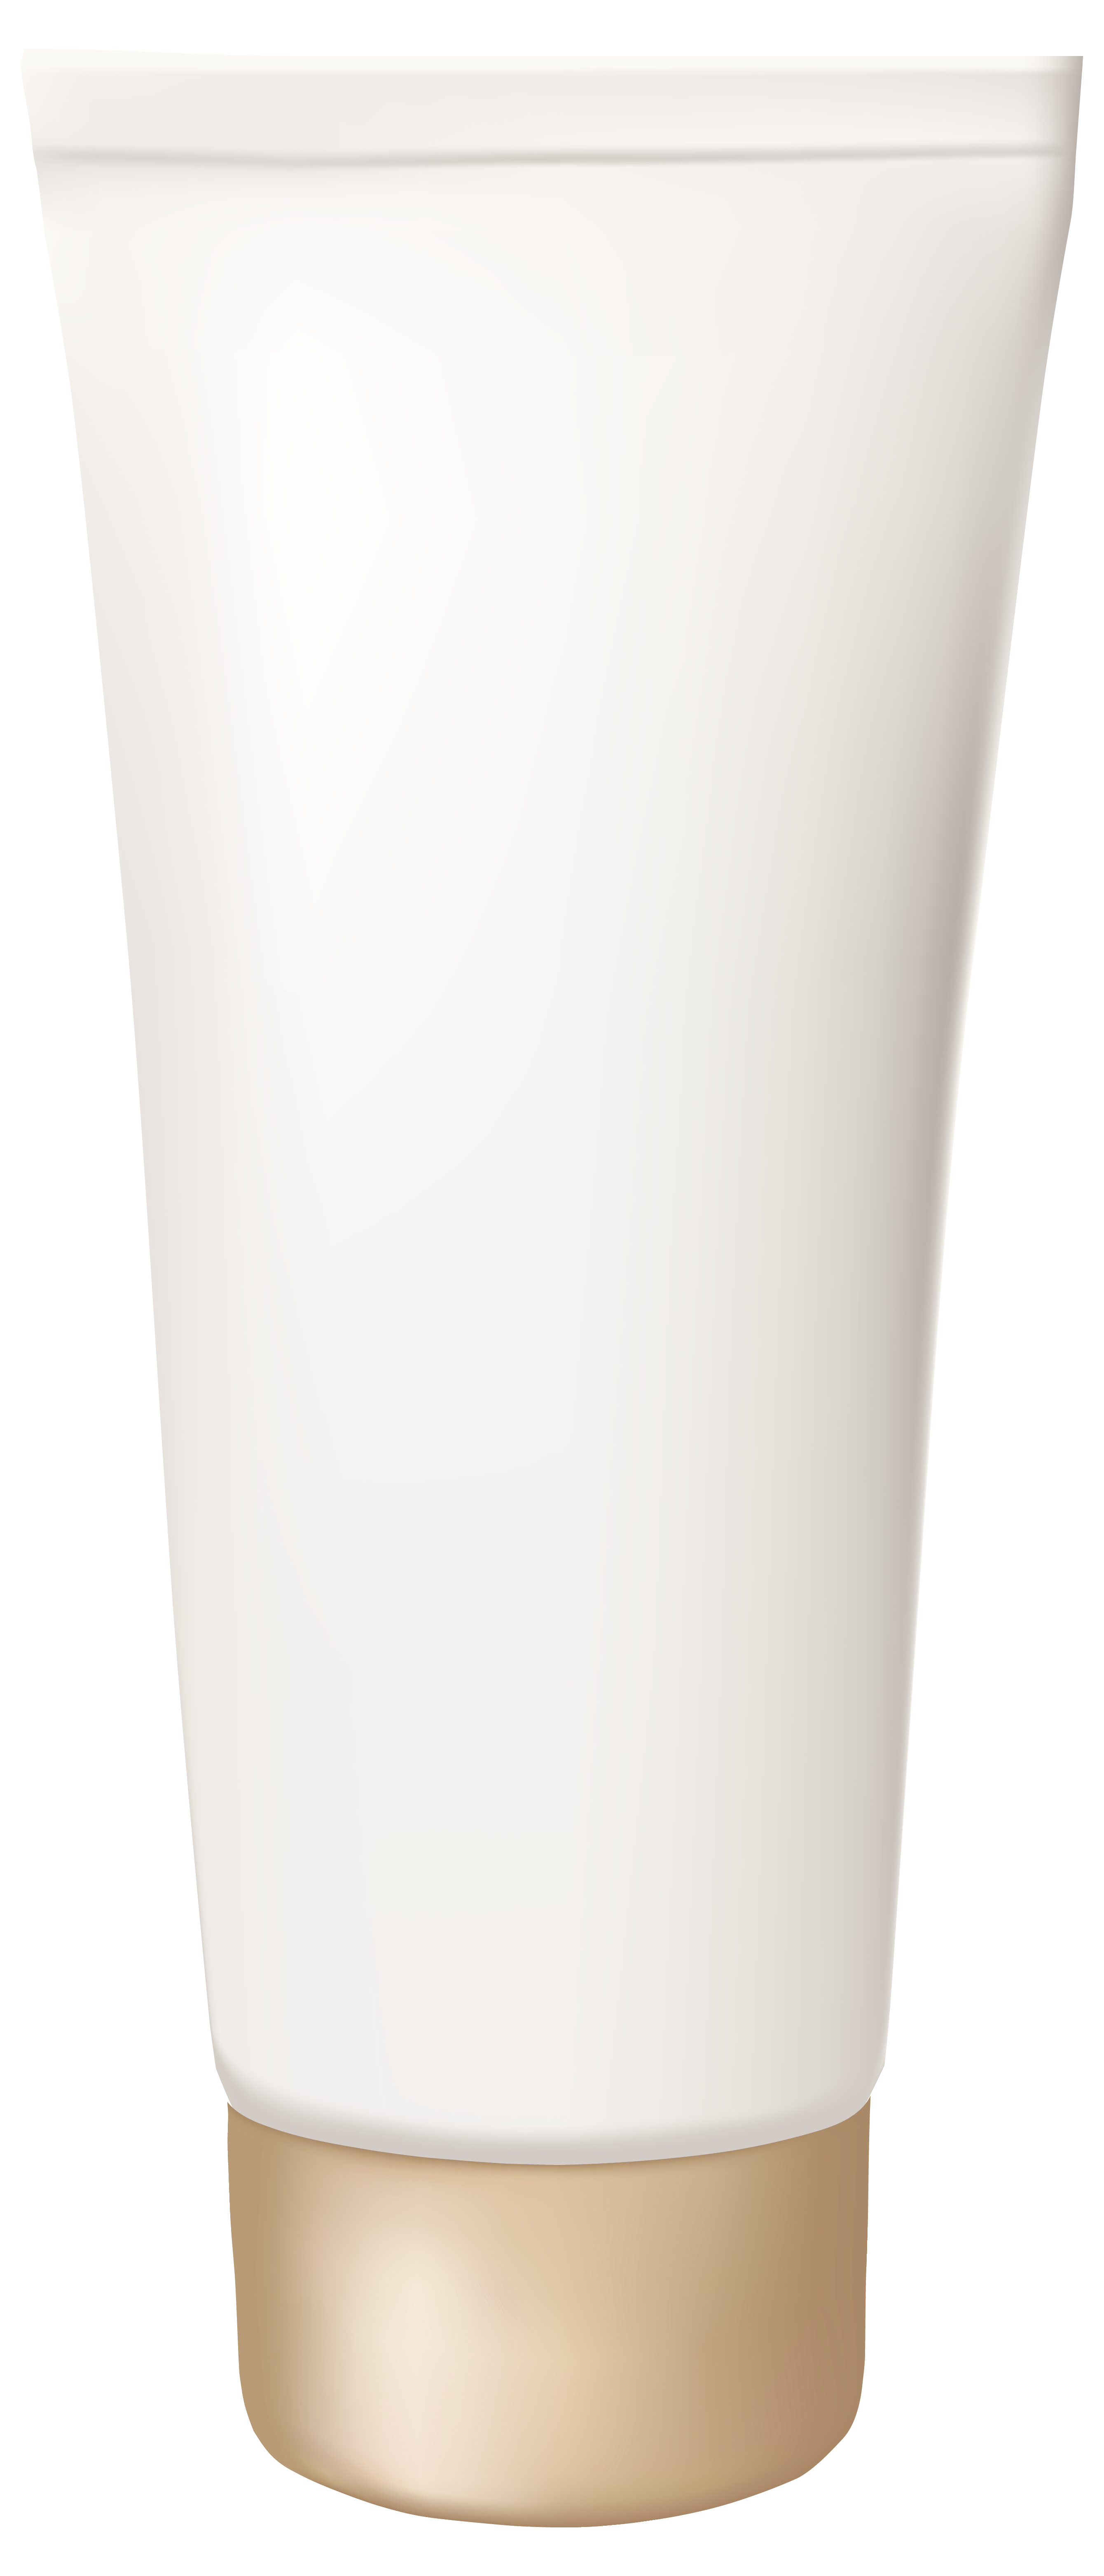 Cream Tube PNG Clipart Image.